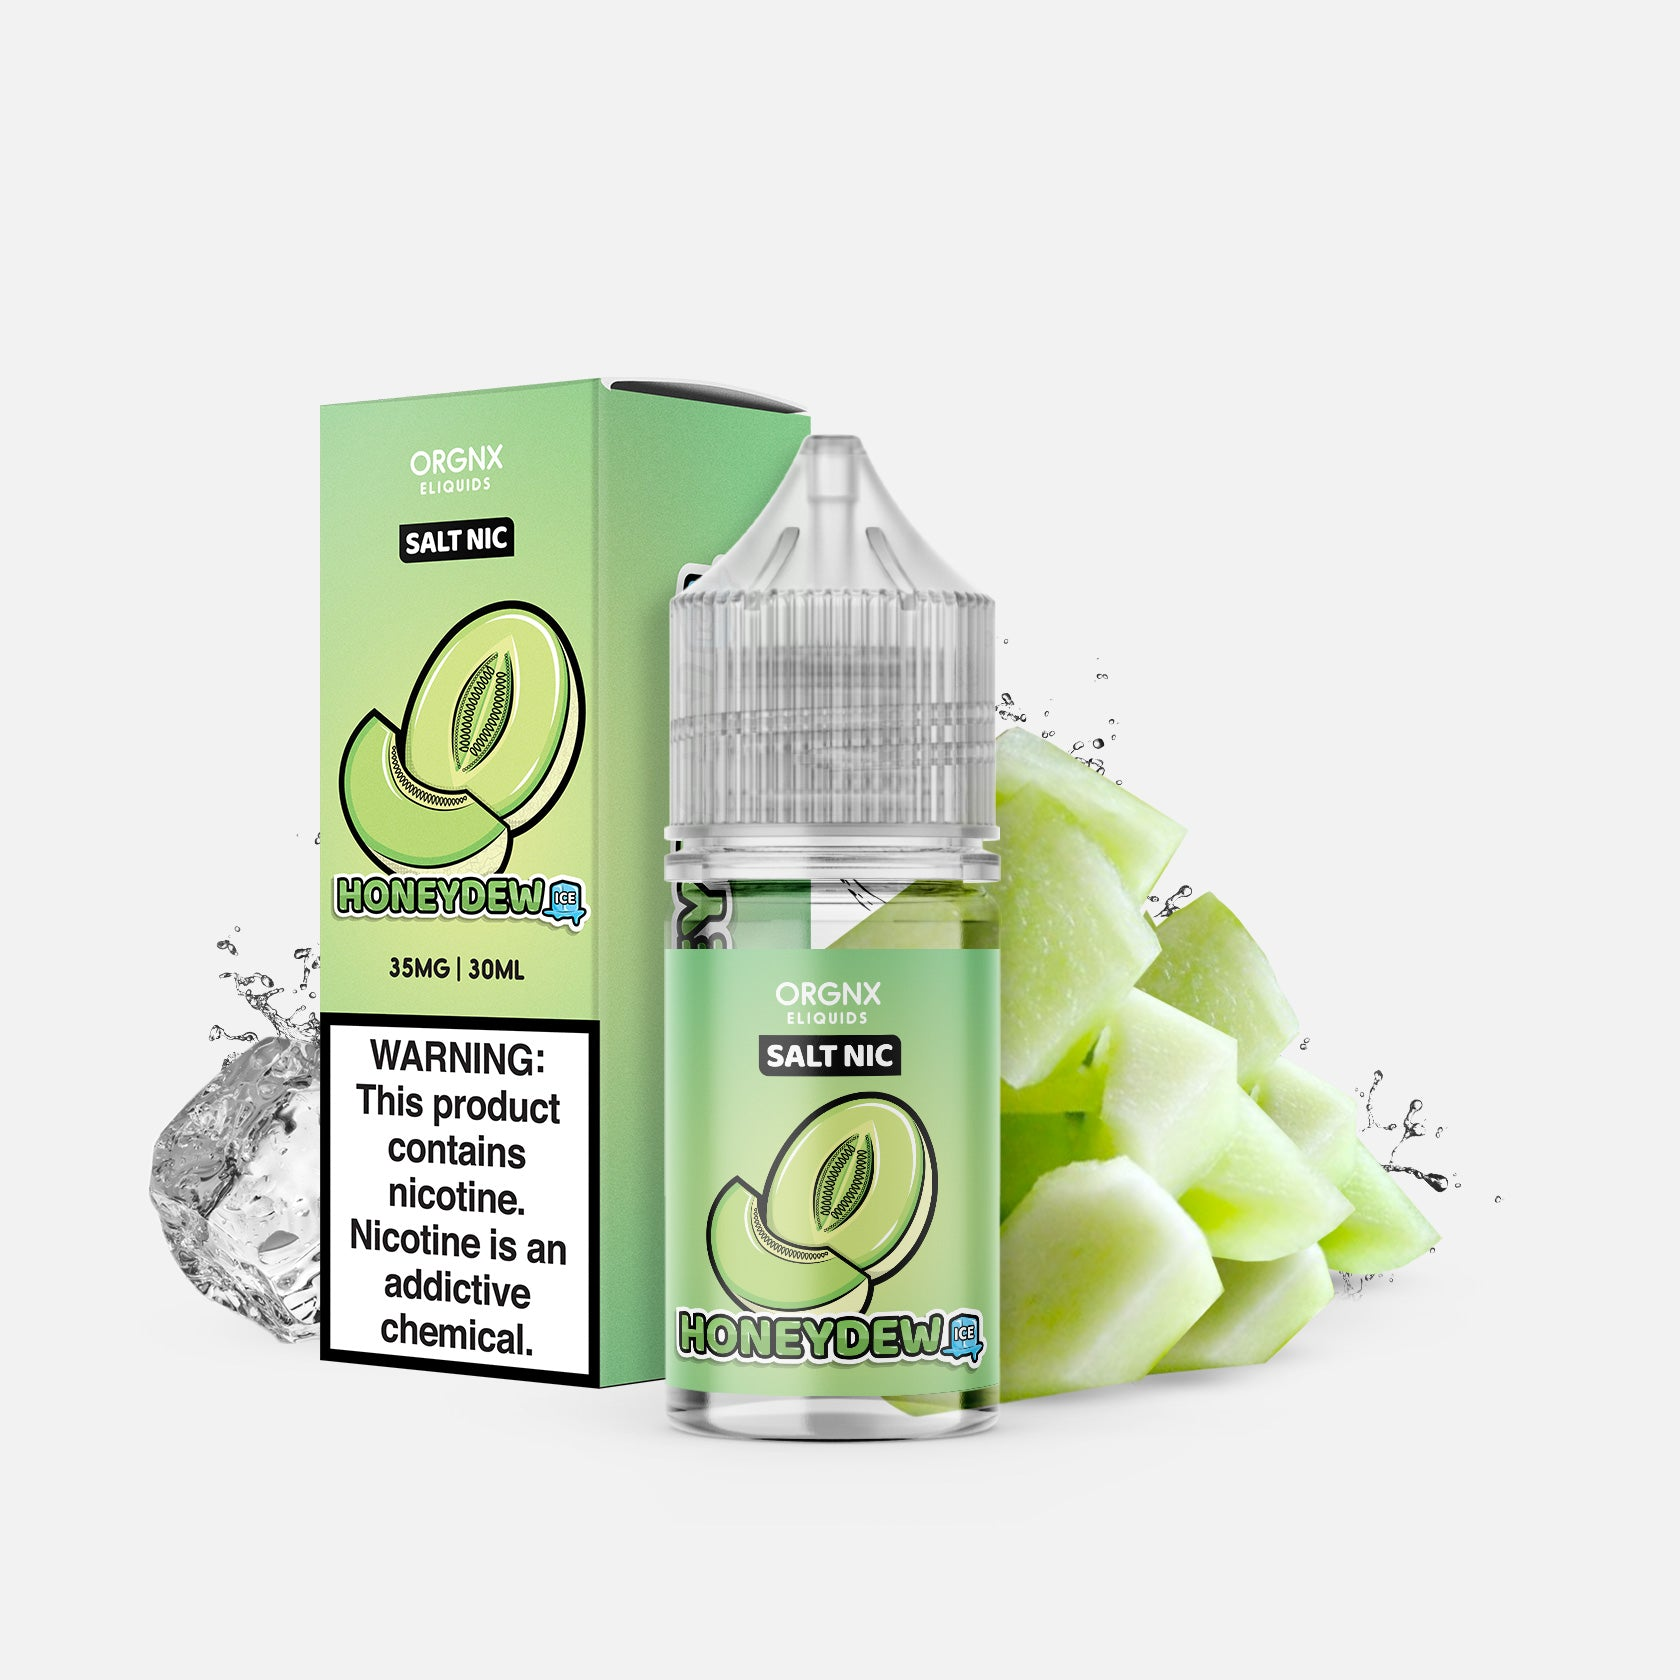 ORGNX Eliquids Honeydew Ice Salt Nic